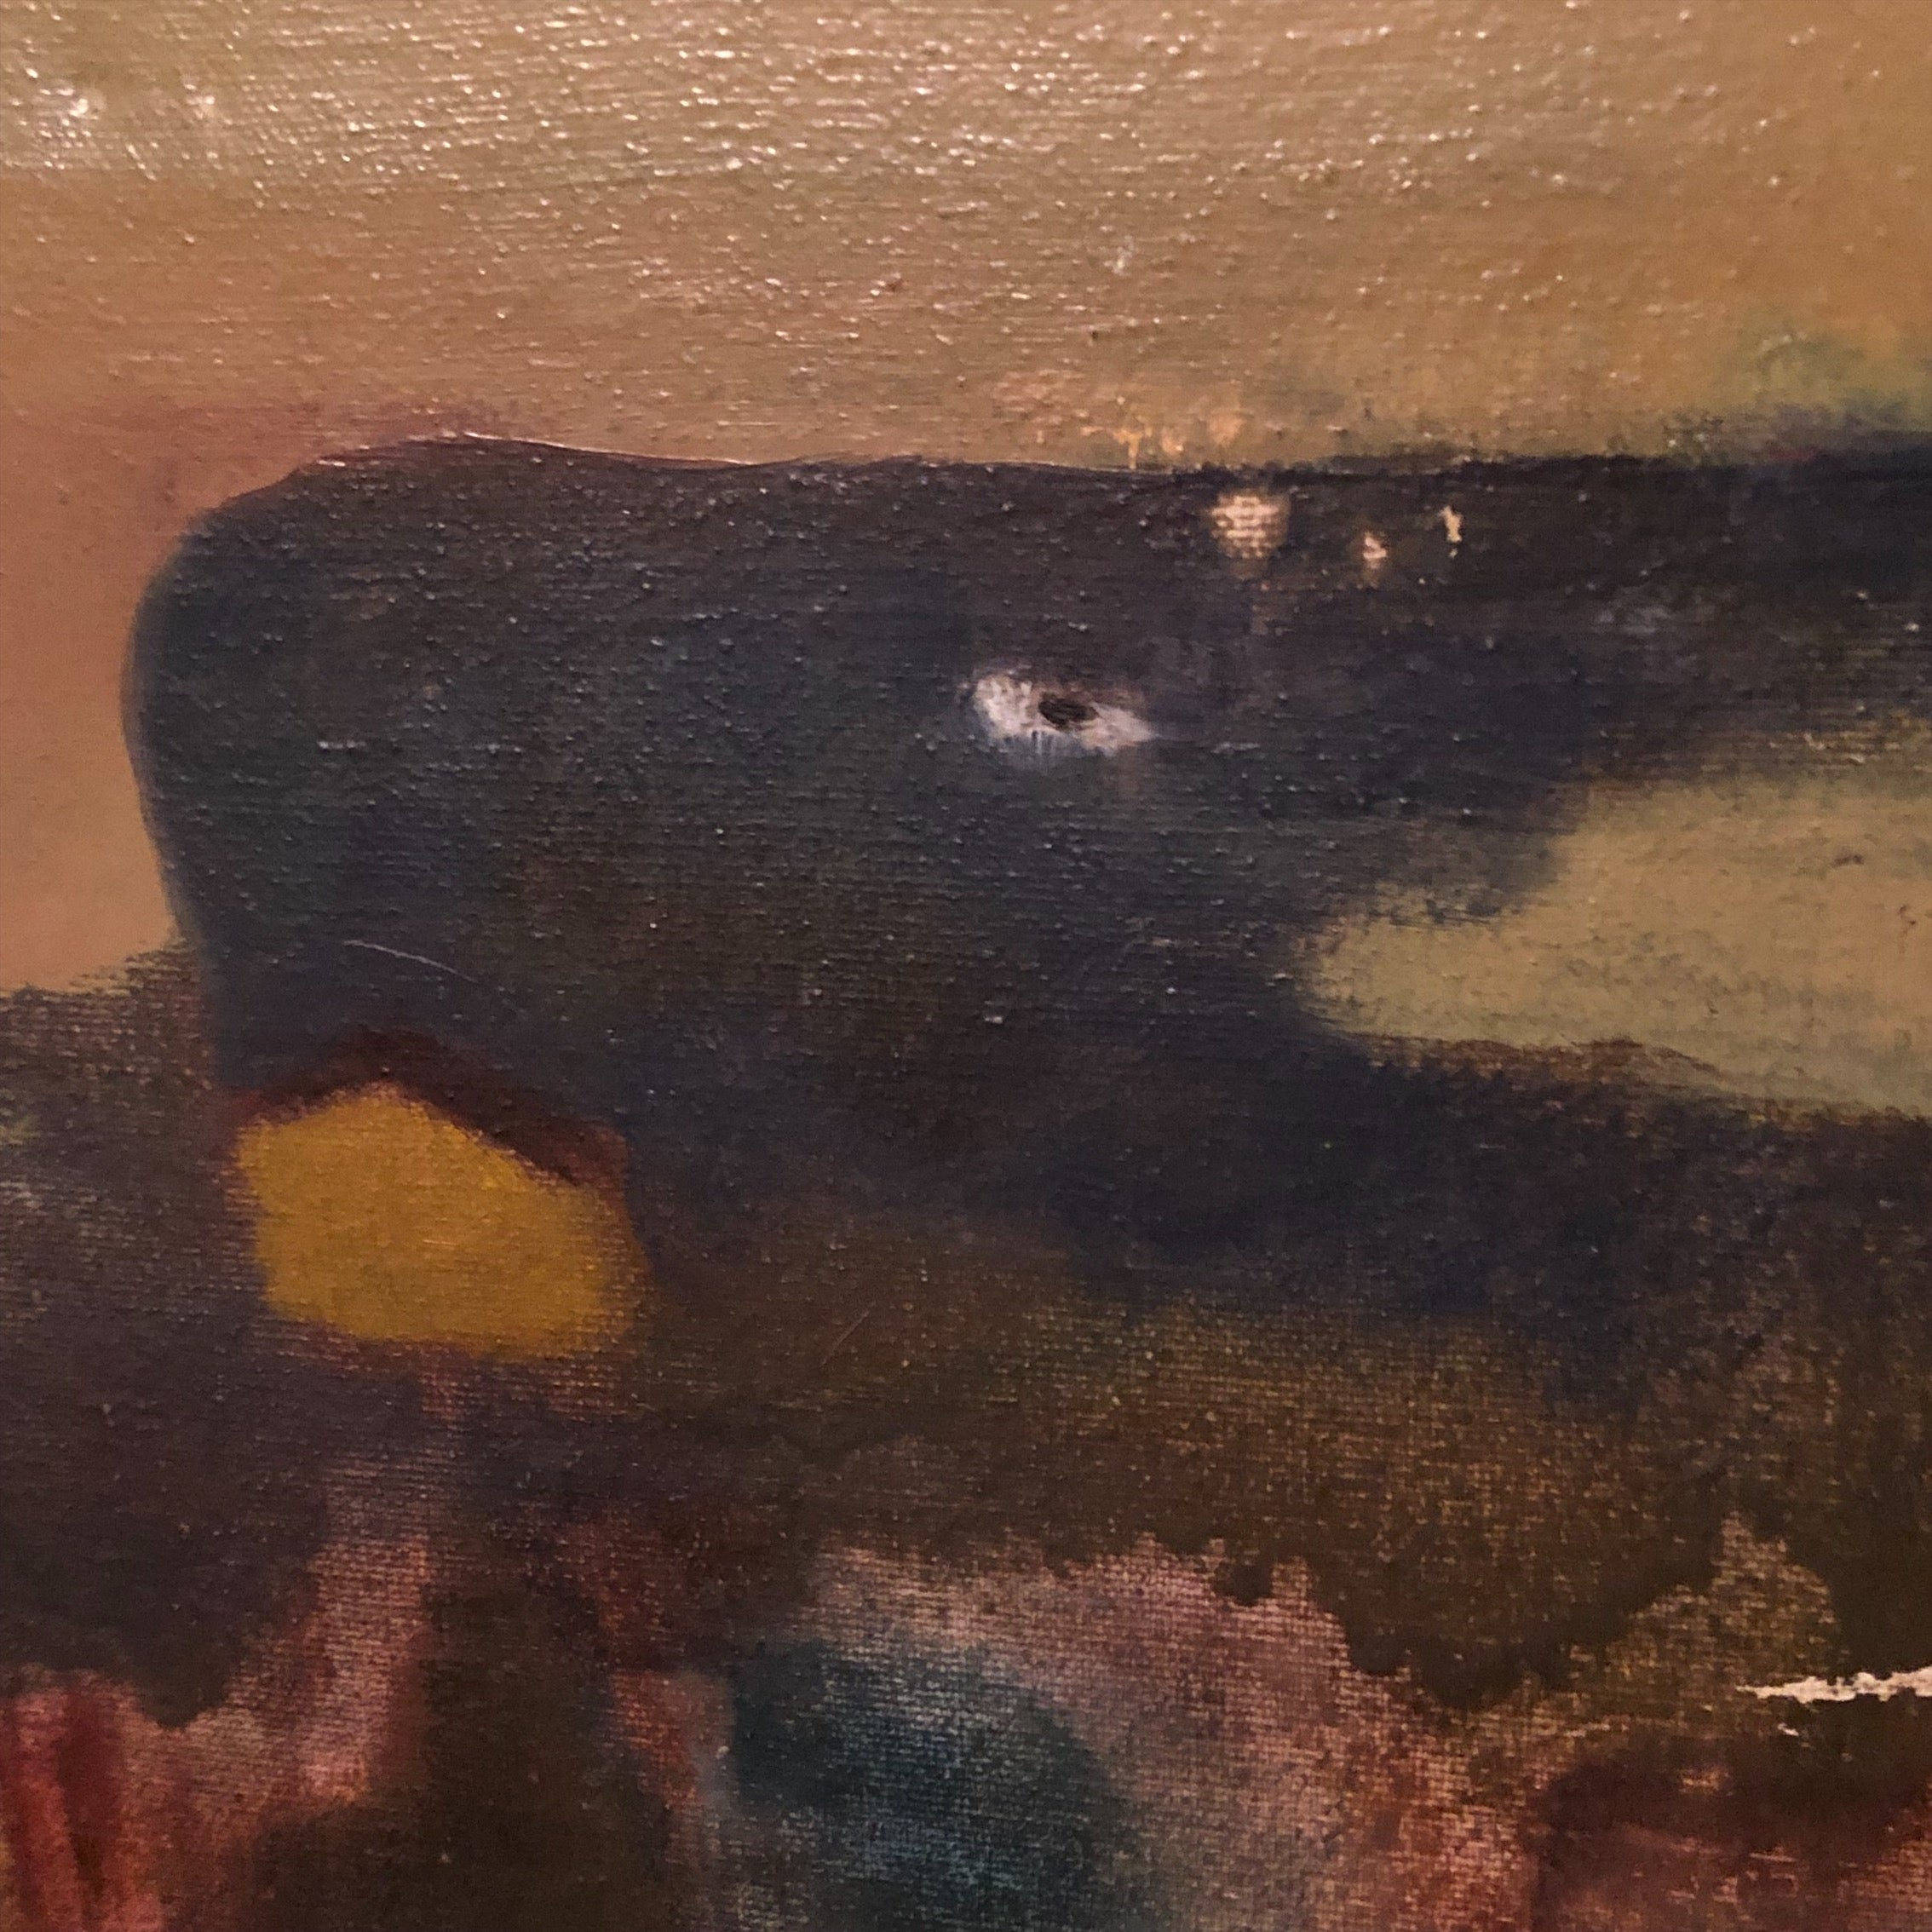 Close up of Vintage Surreal Painting from 1960s - Outsider Art - Christopher Charles - Surrealist Landscape Scene - Rare Unusual Artwork